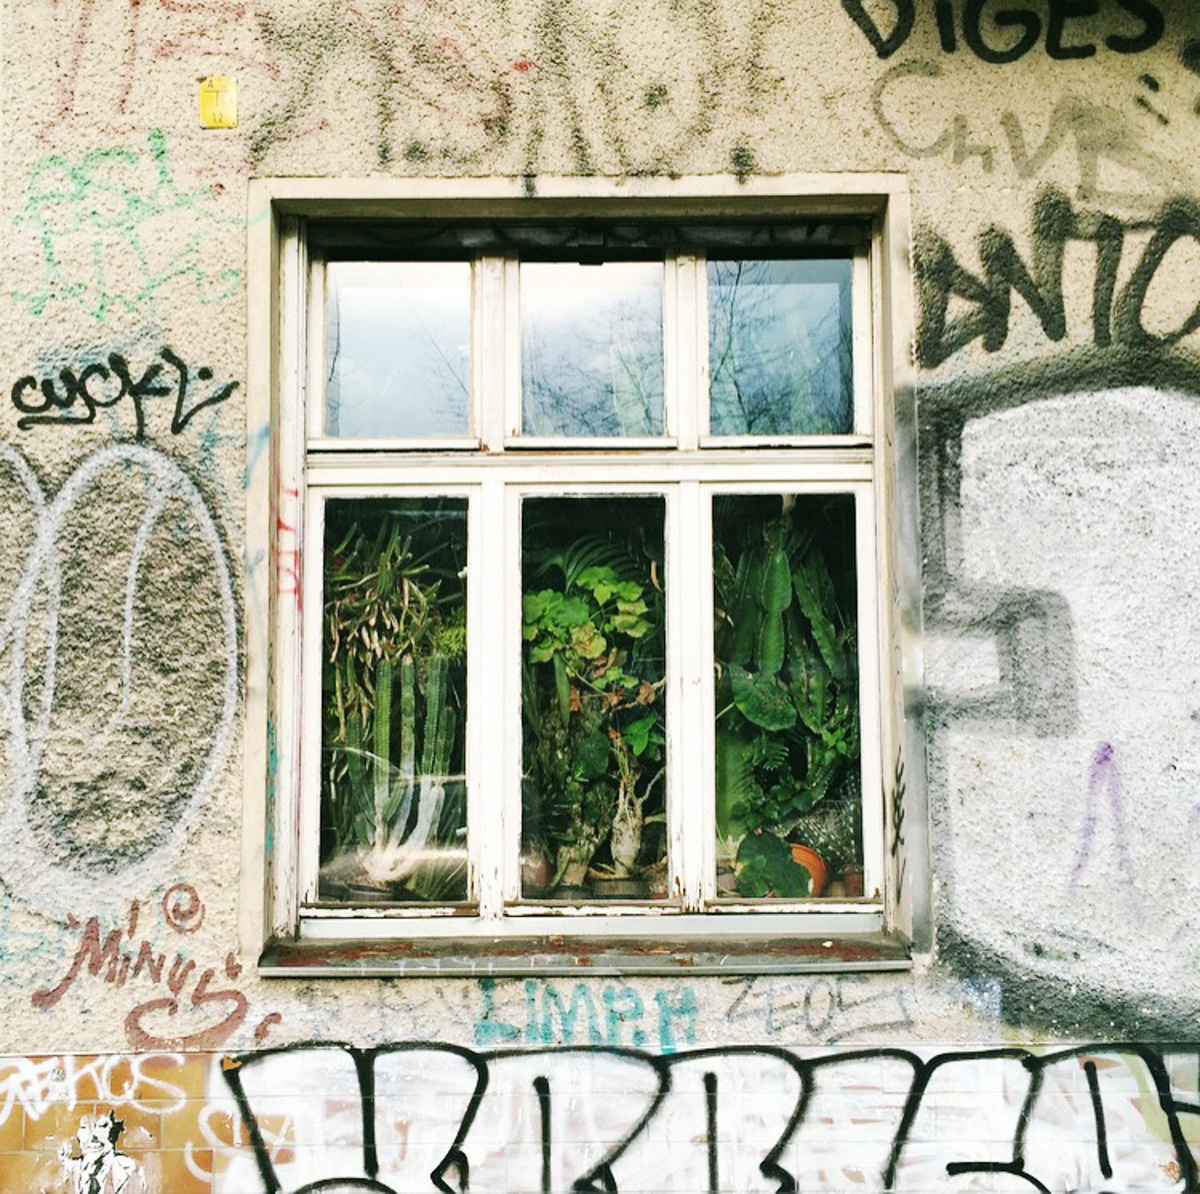 Days in Berlin 013-18